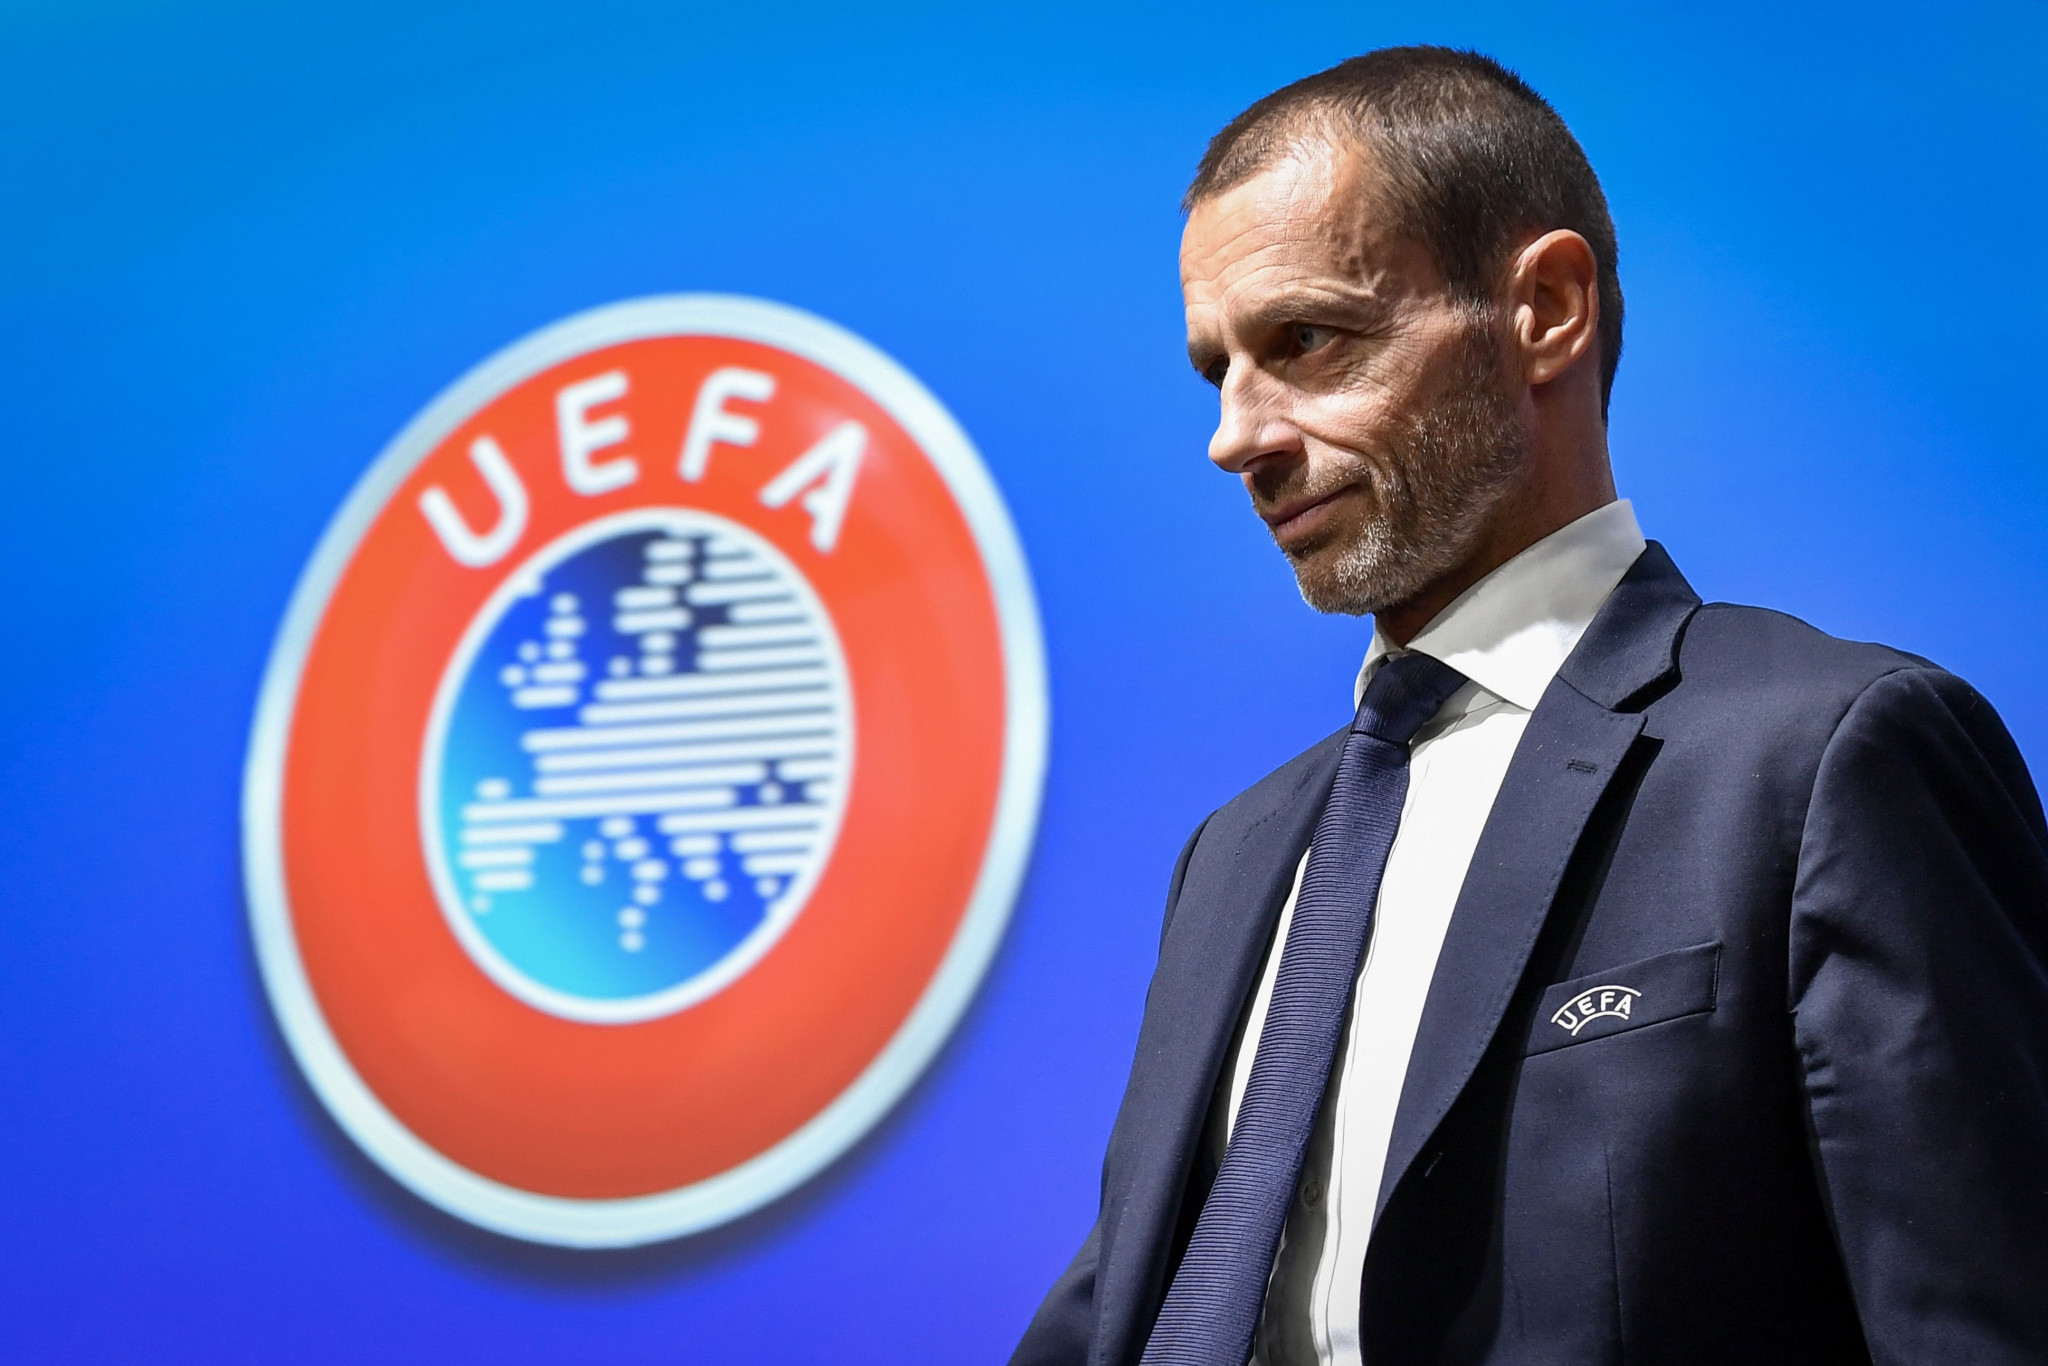 UEFA President Aleksander Čeferin said the health of fans, staff and players has to be the continental governing body's number one priority ©Getty Images